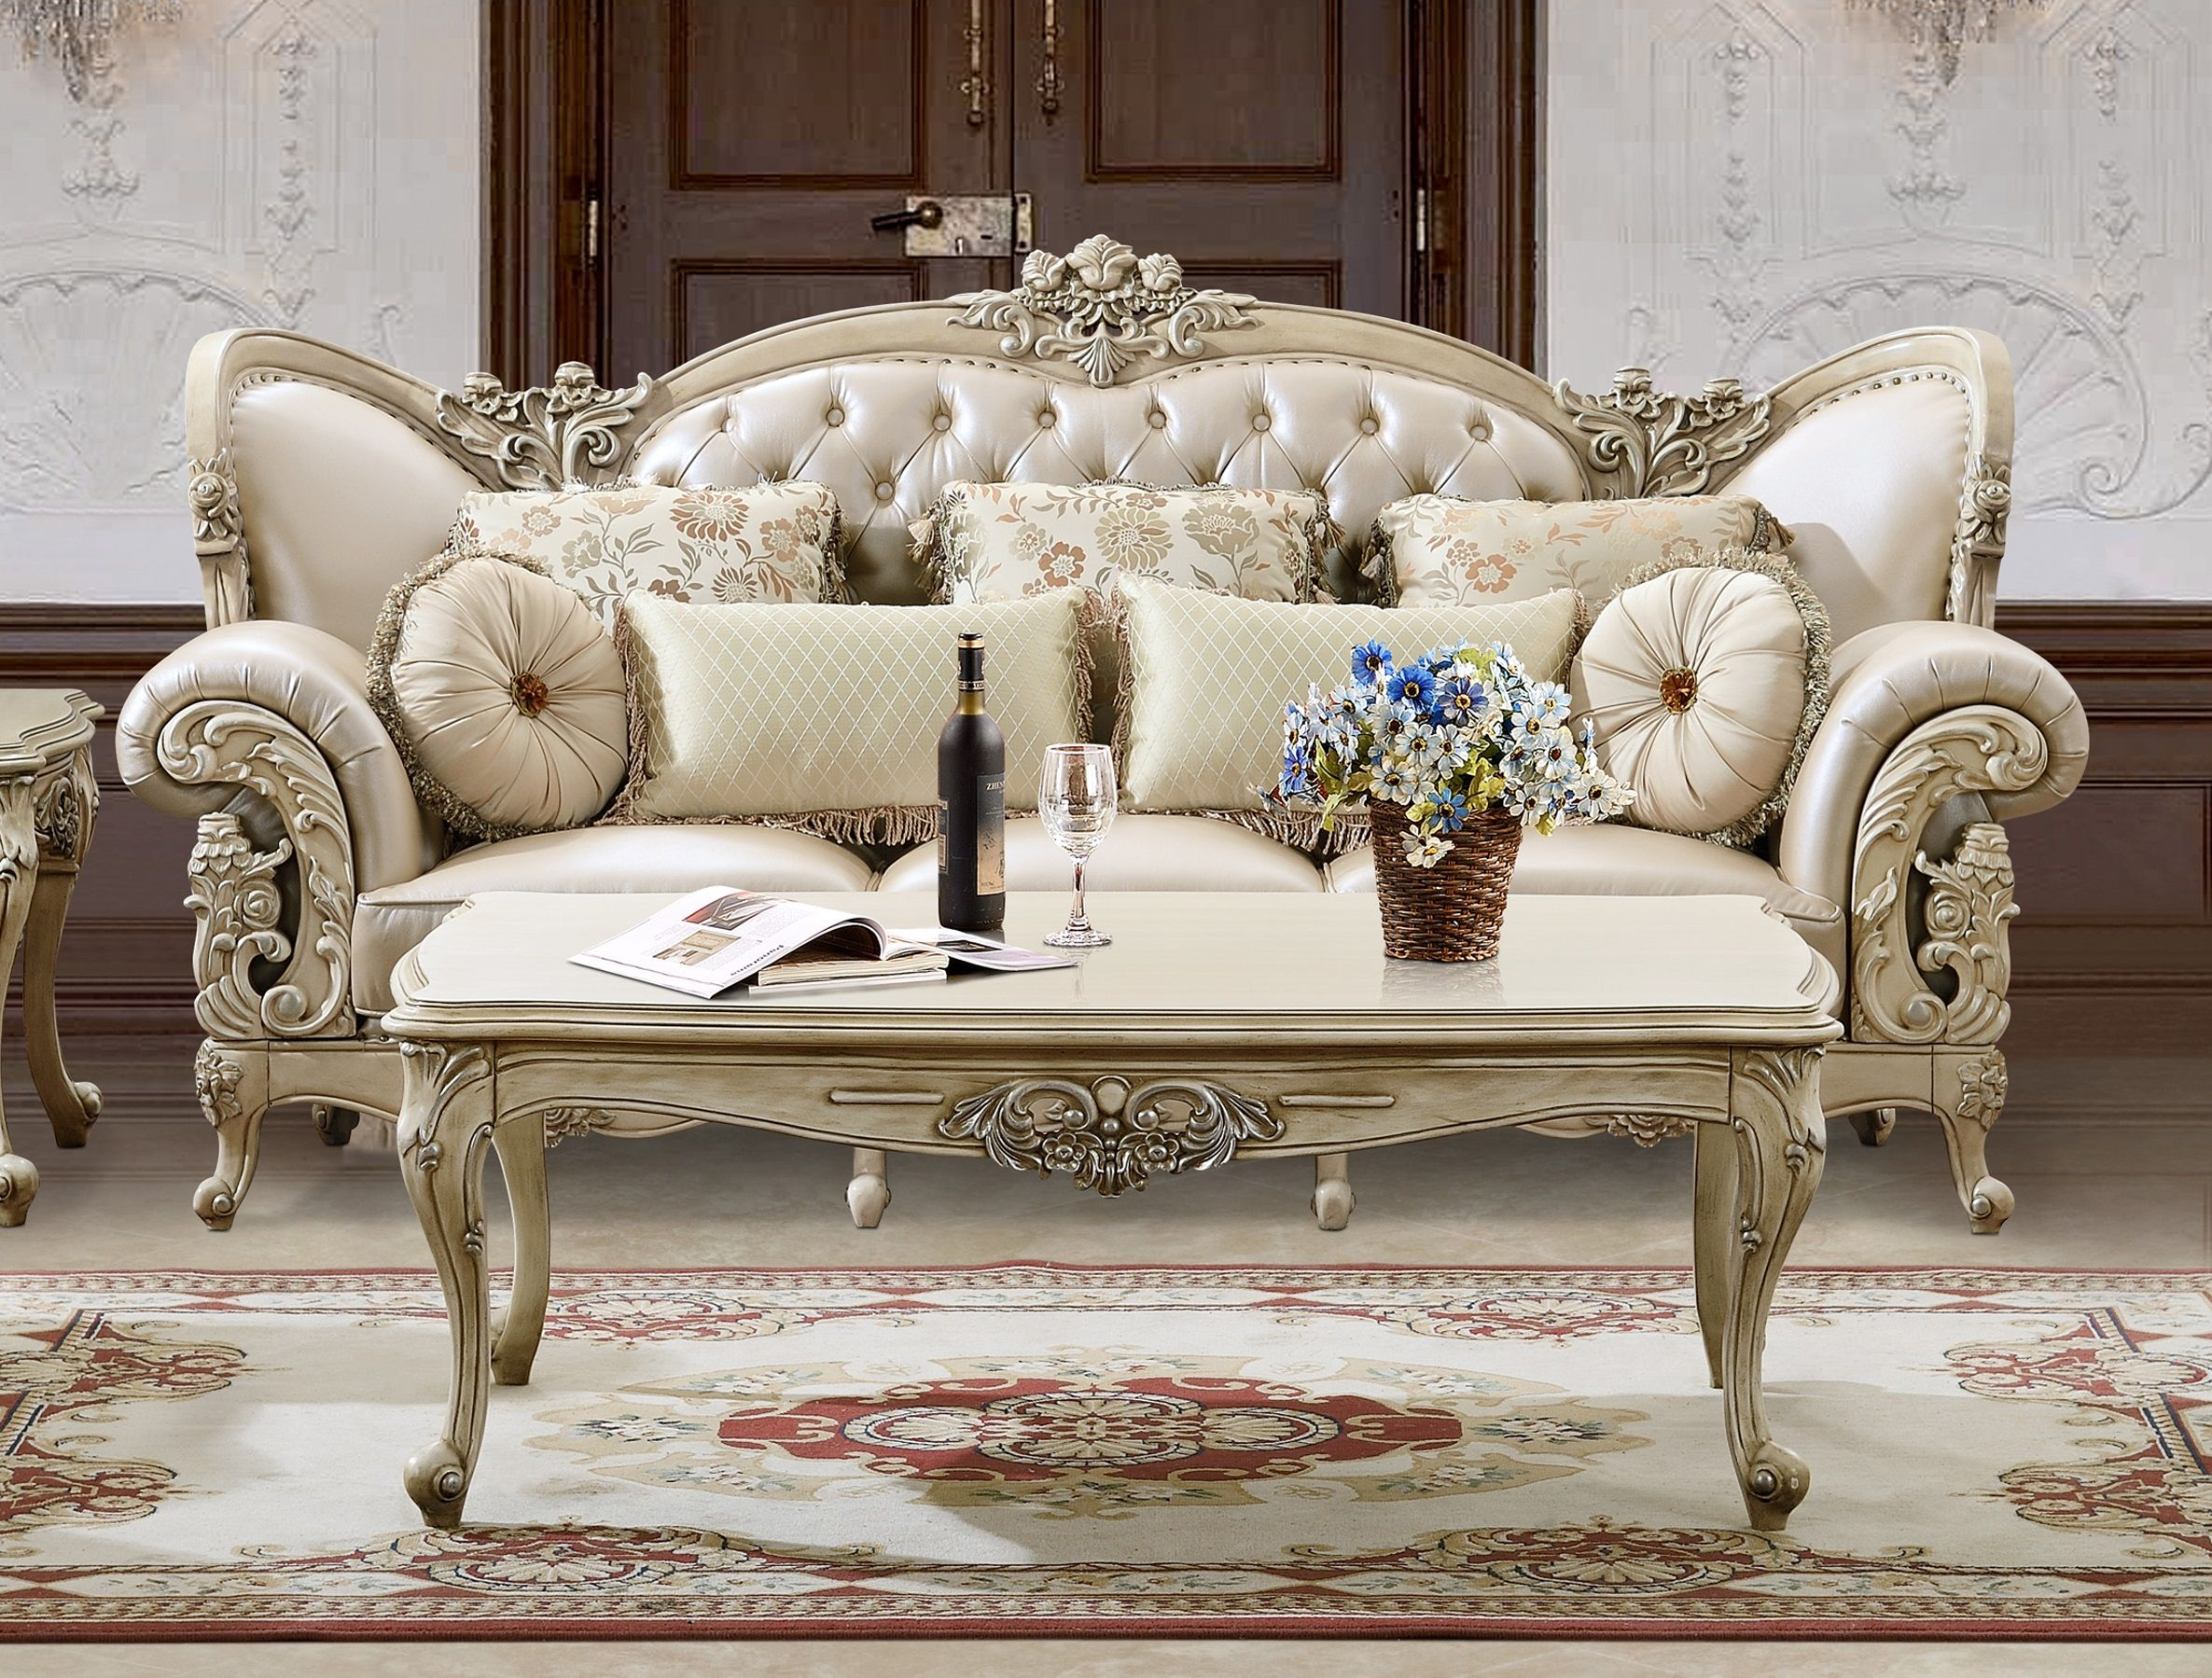 Homey design hd 32 luxury sofa homey design hd 32 luxury sofa moroccan living room furniture traditional